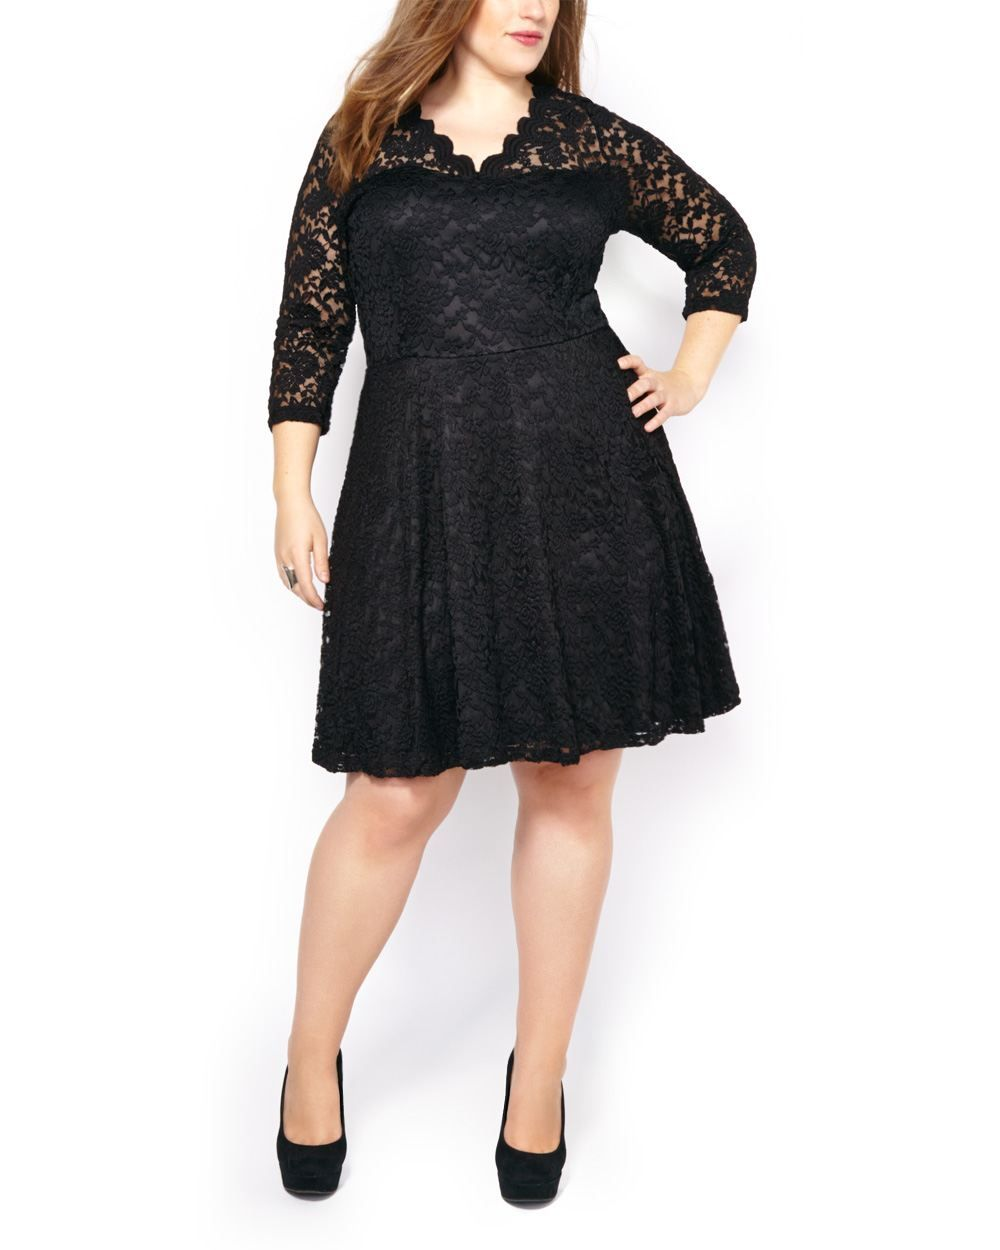 This stunning plus-size black dress blends comfort and ...